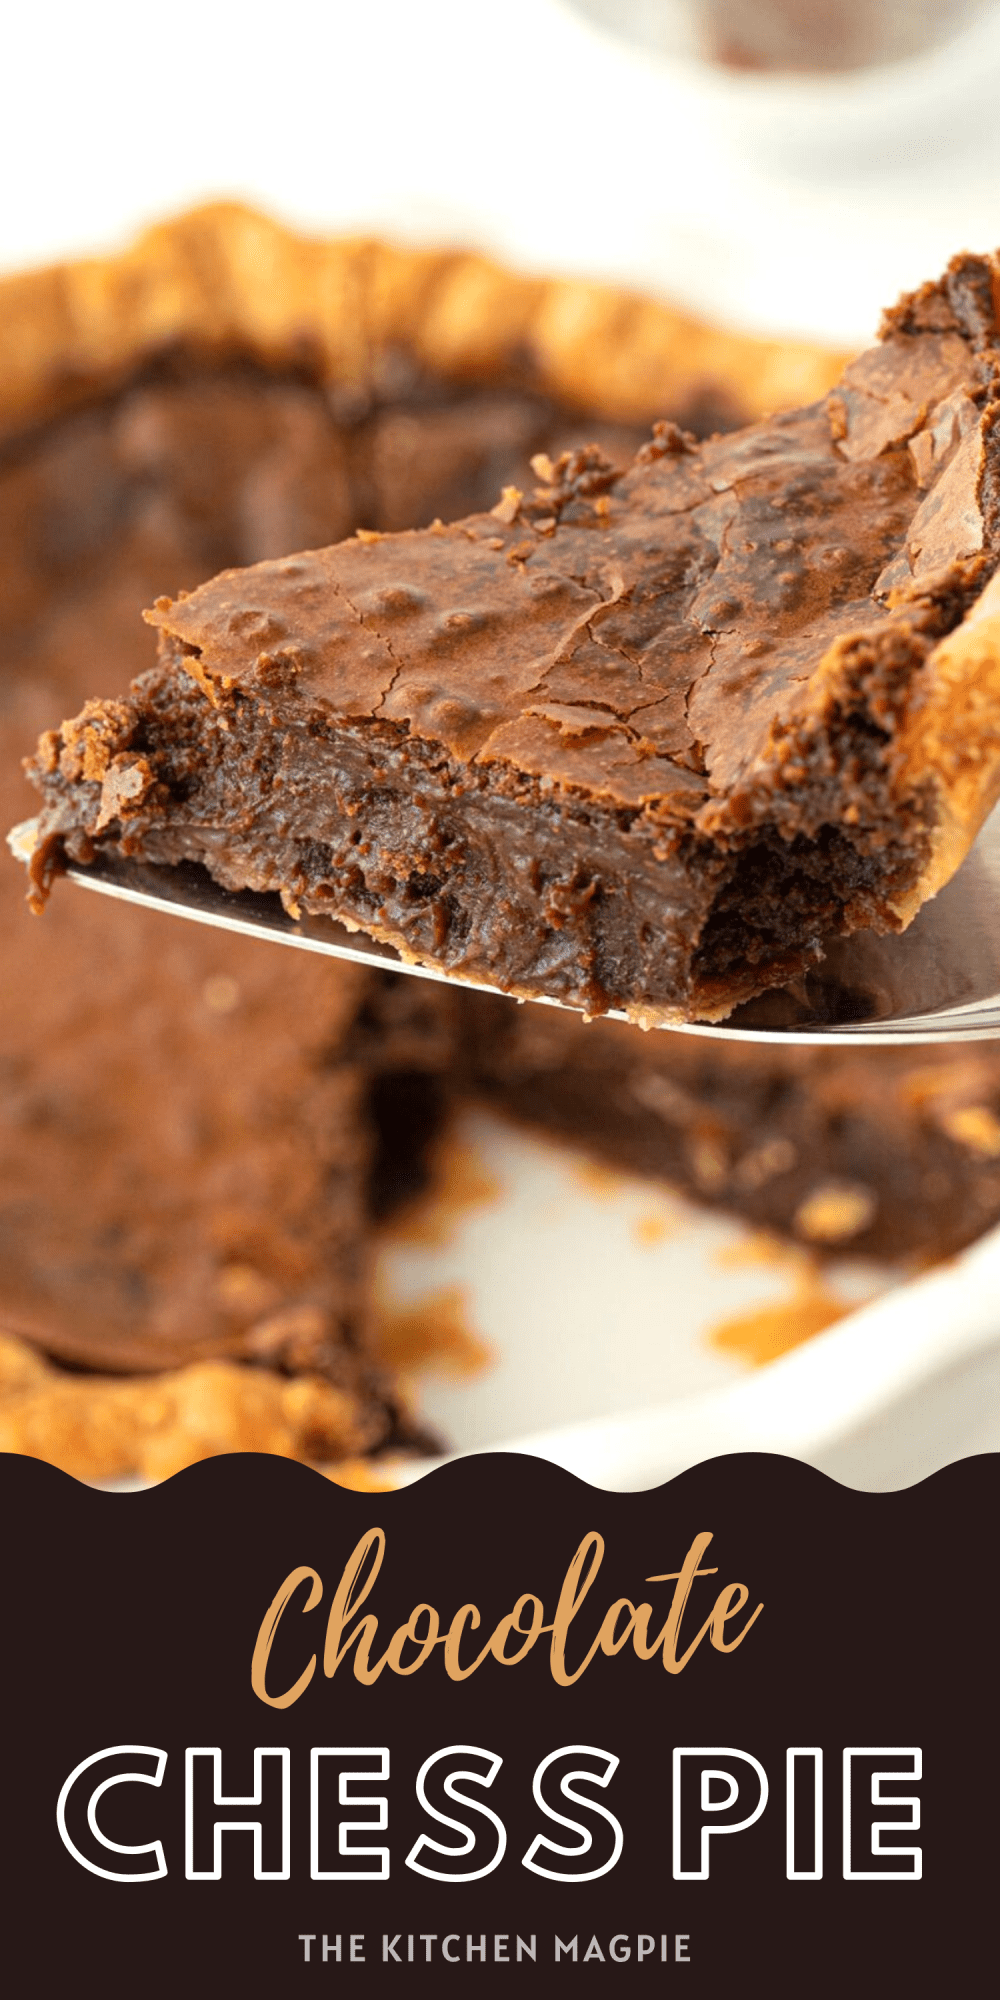 This buttery, chocolate chess pie tastes like a crackle topped brownie that's baked into a crunchy pie shell!